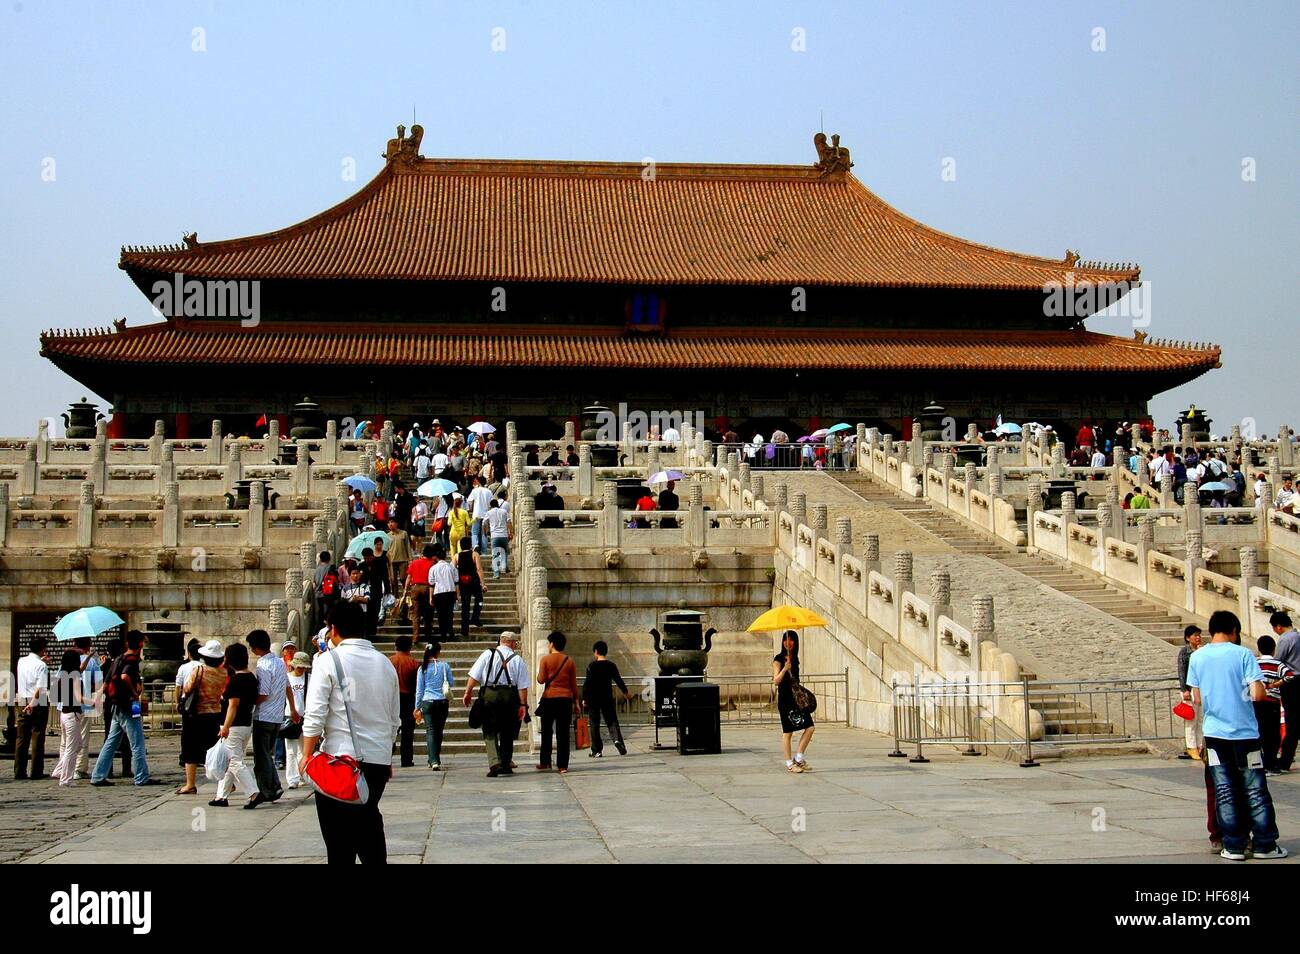 Beijing, China - May 2, 2005:  Two marble staircases lead to the Hall of Supreme Harmony (Tai He Dian) at the Forbidden - Stock Image